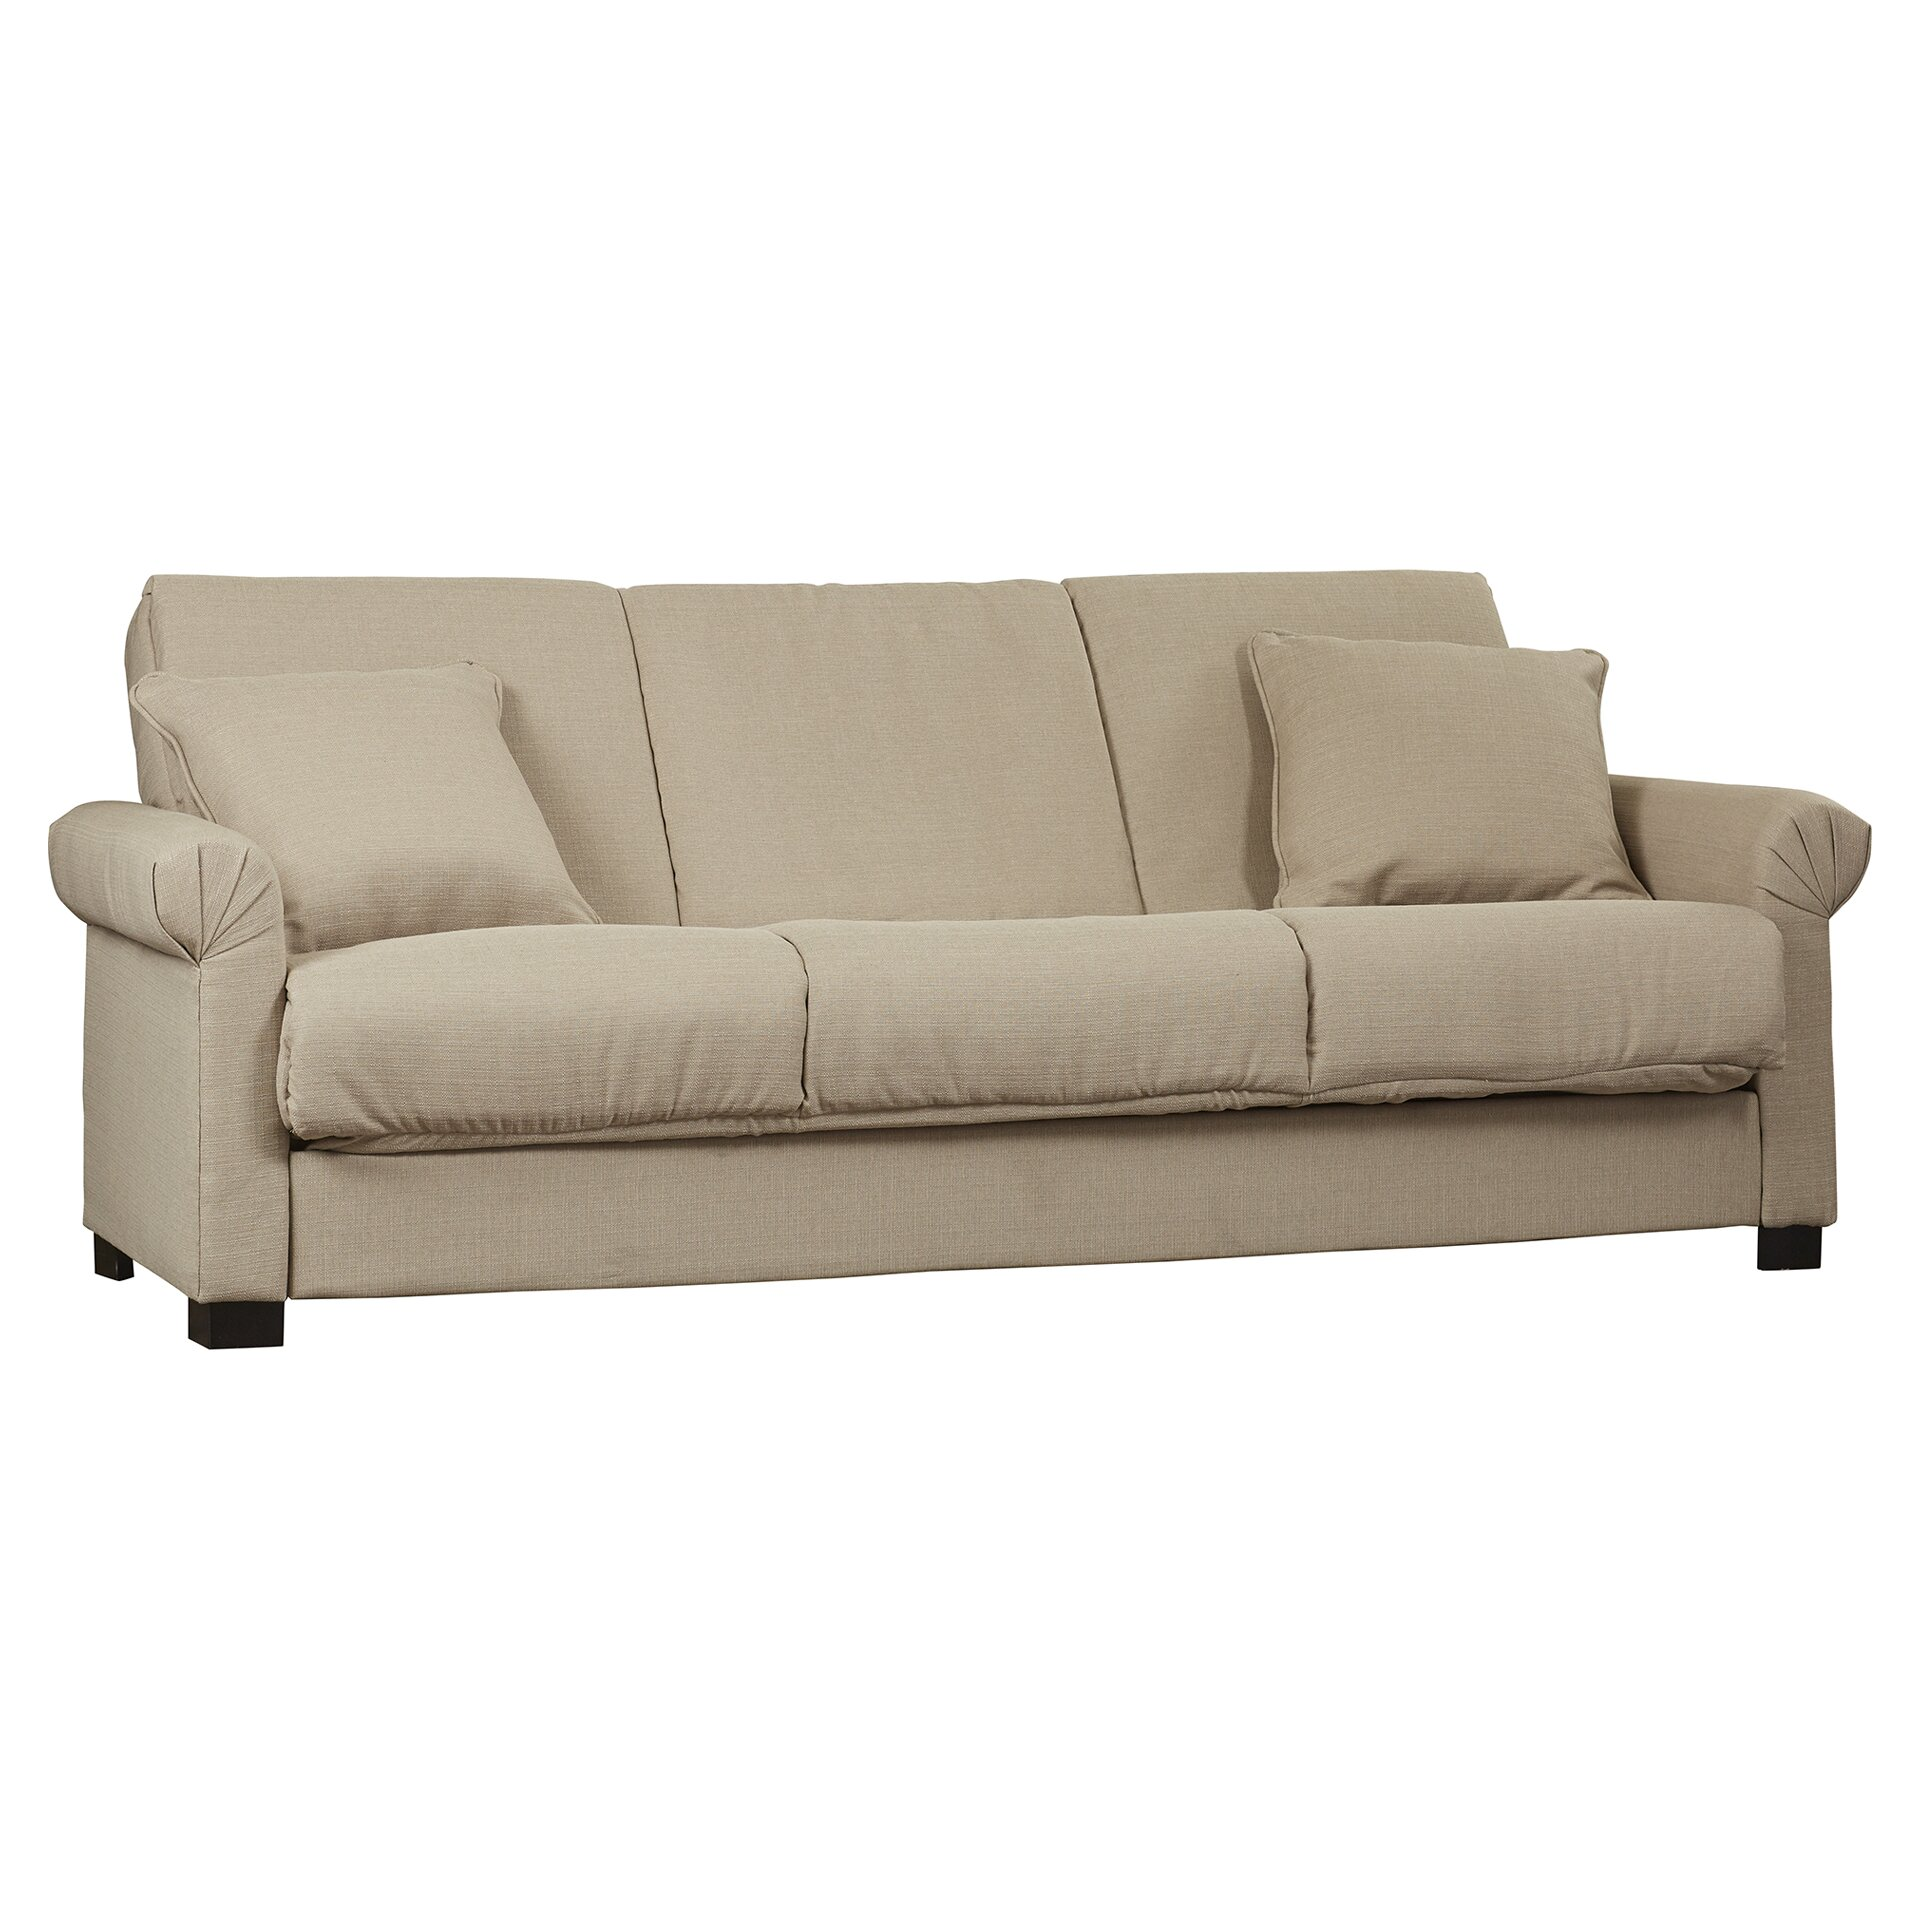 Alcott Hill Lawrence Full Convertible Upholstered Sleeper